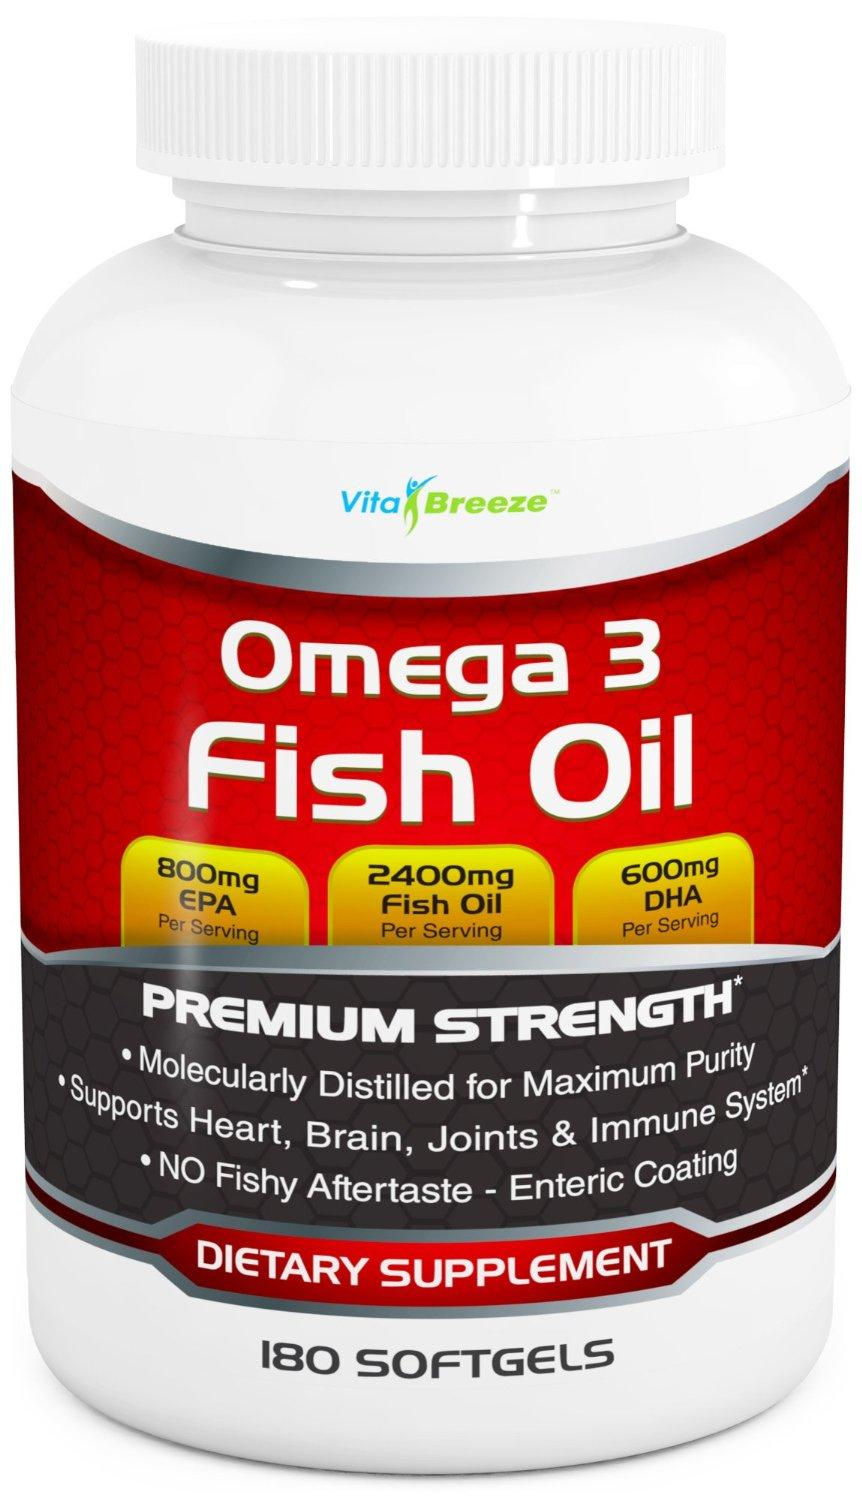 Omega 3 Fish Oil Supplement (180 Softgels) - 2400mg Triple Strength Fish Oil